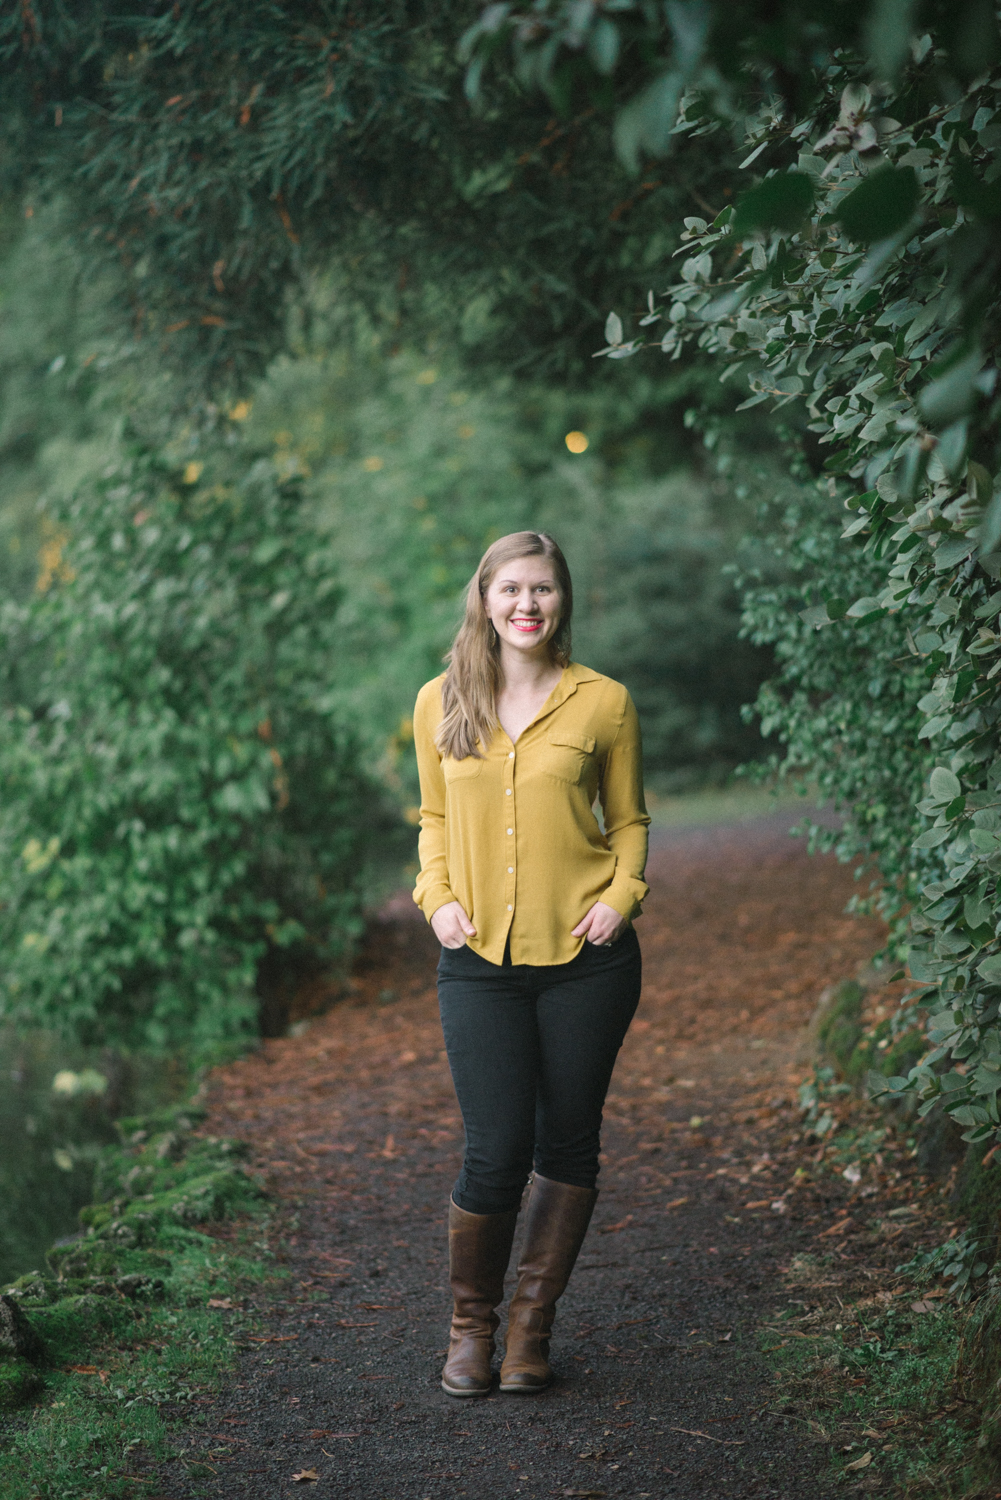 senior-portrait-photography-portland-oregon-laurelhurst-park-shelley-marie-photo-3.jpg